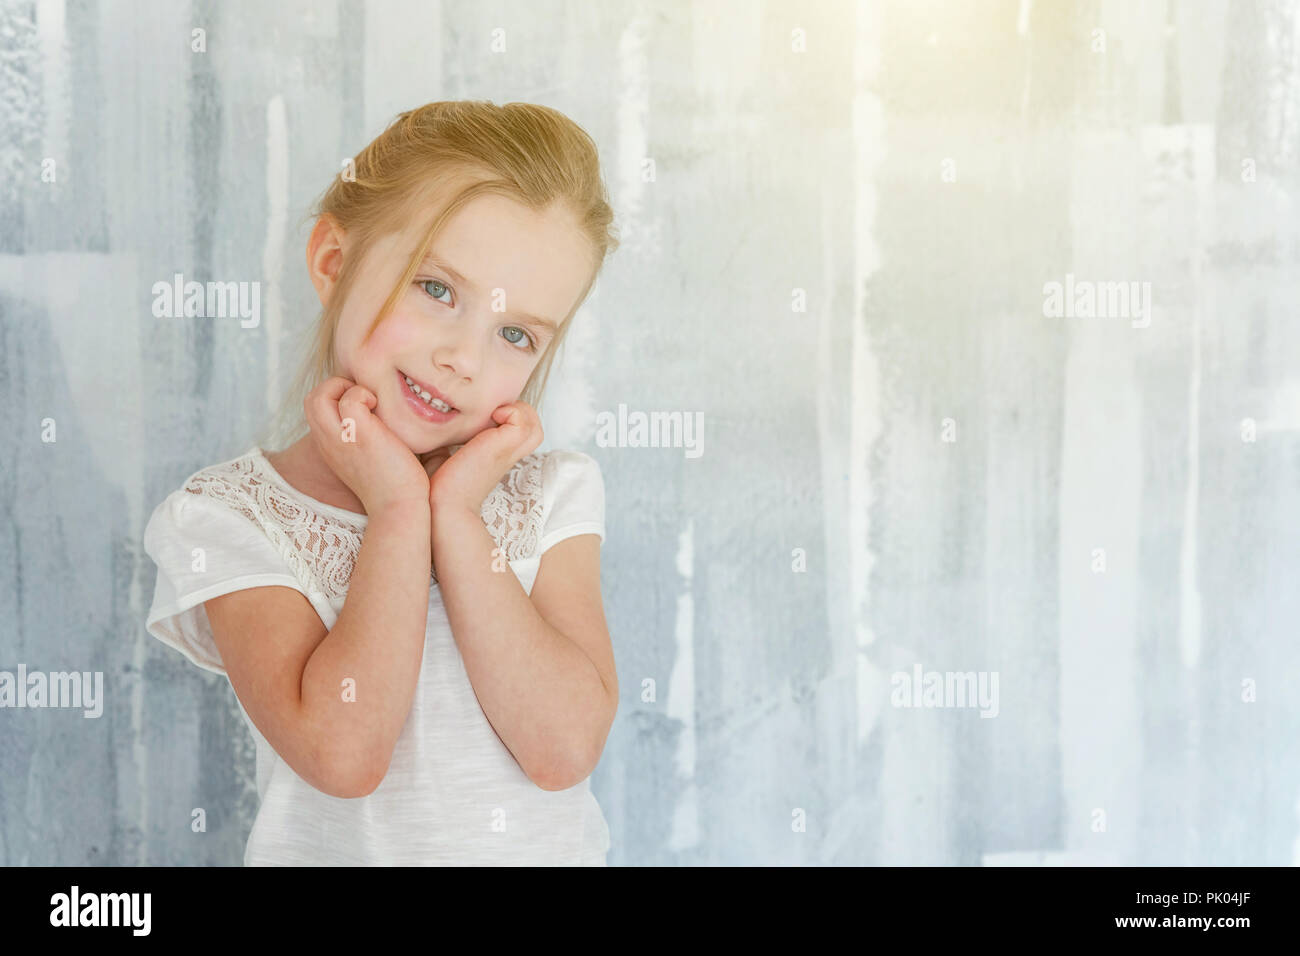 Sweet happy little girl in blank white t-shirt standing against grey textured wall background Childhood, schoolchildren, youth, relax concept Stock Photo